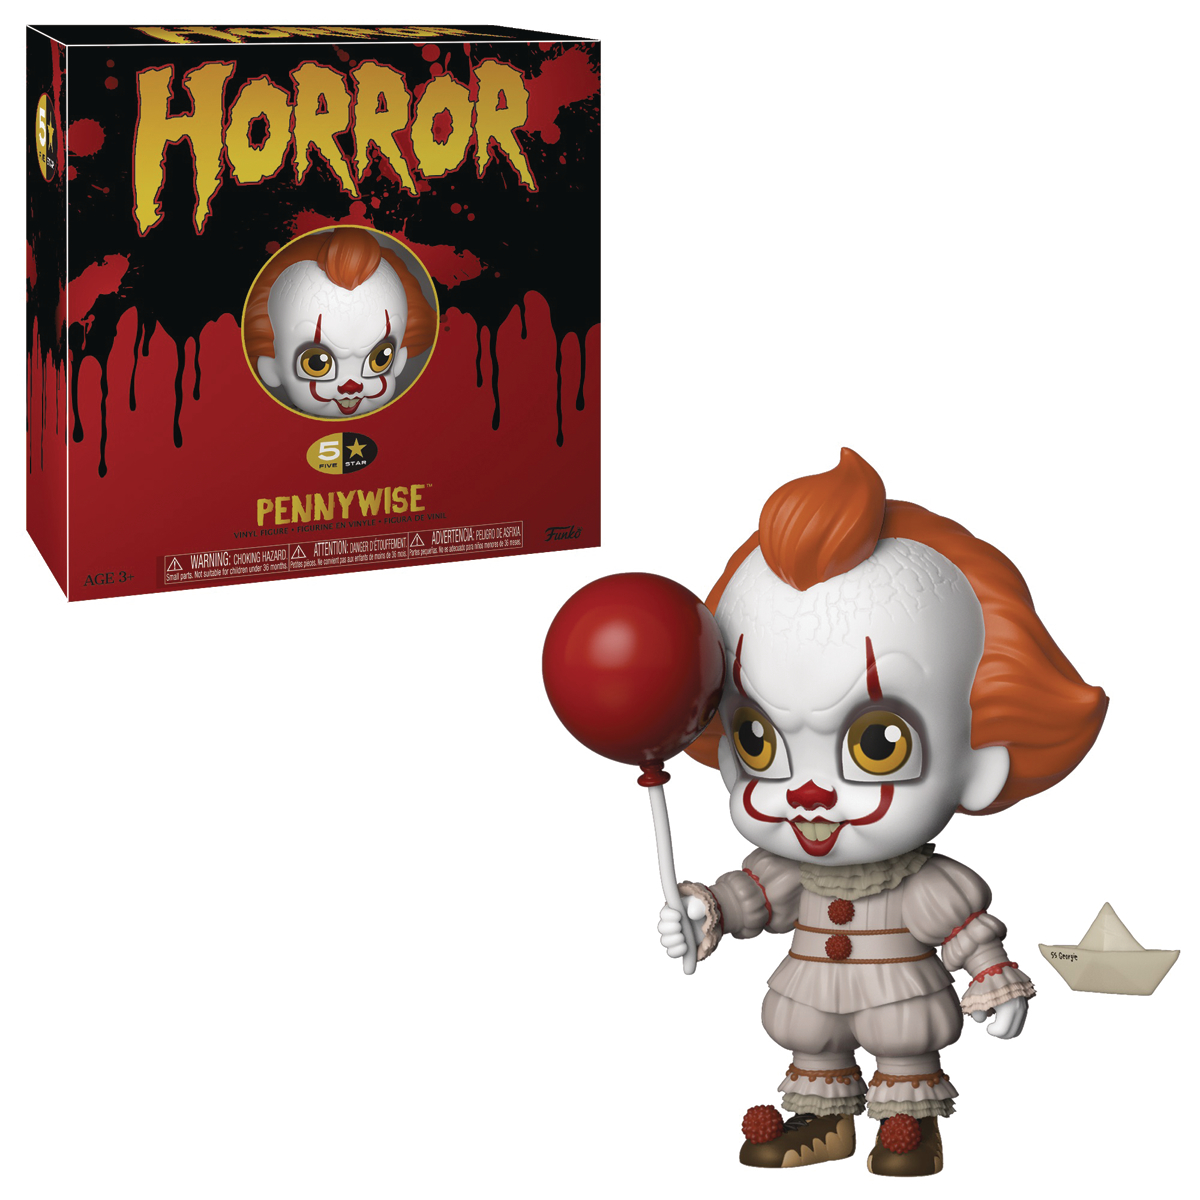 FUNKO 5 STAR HORROR PENNYWISE VINYL FIGURE